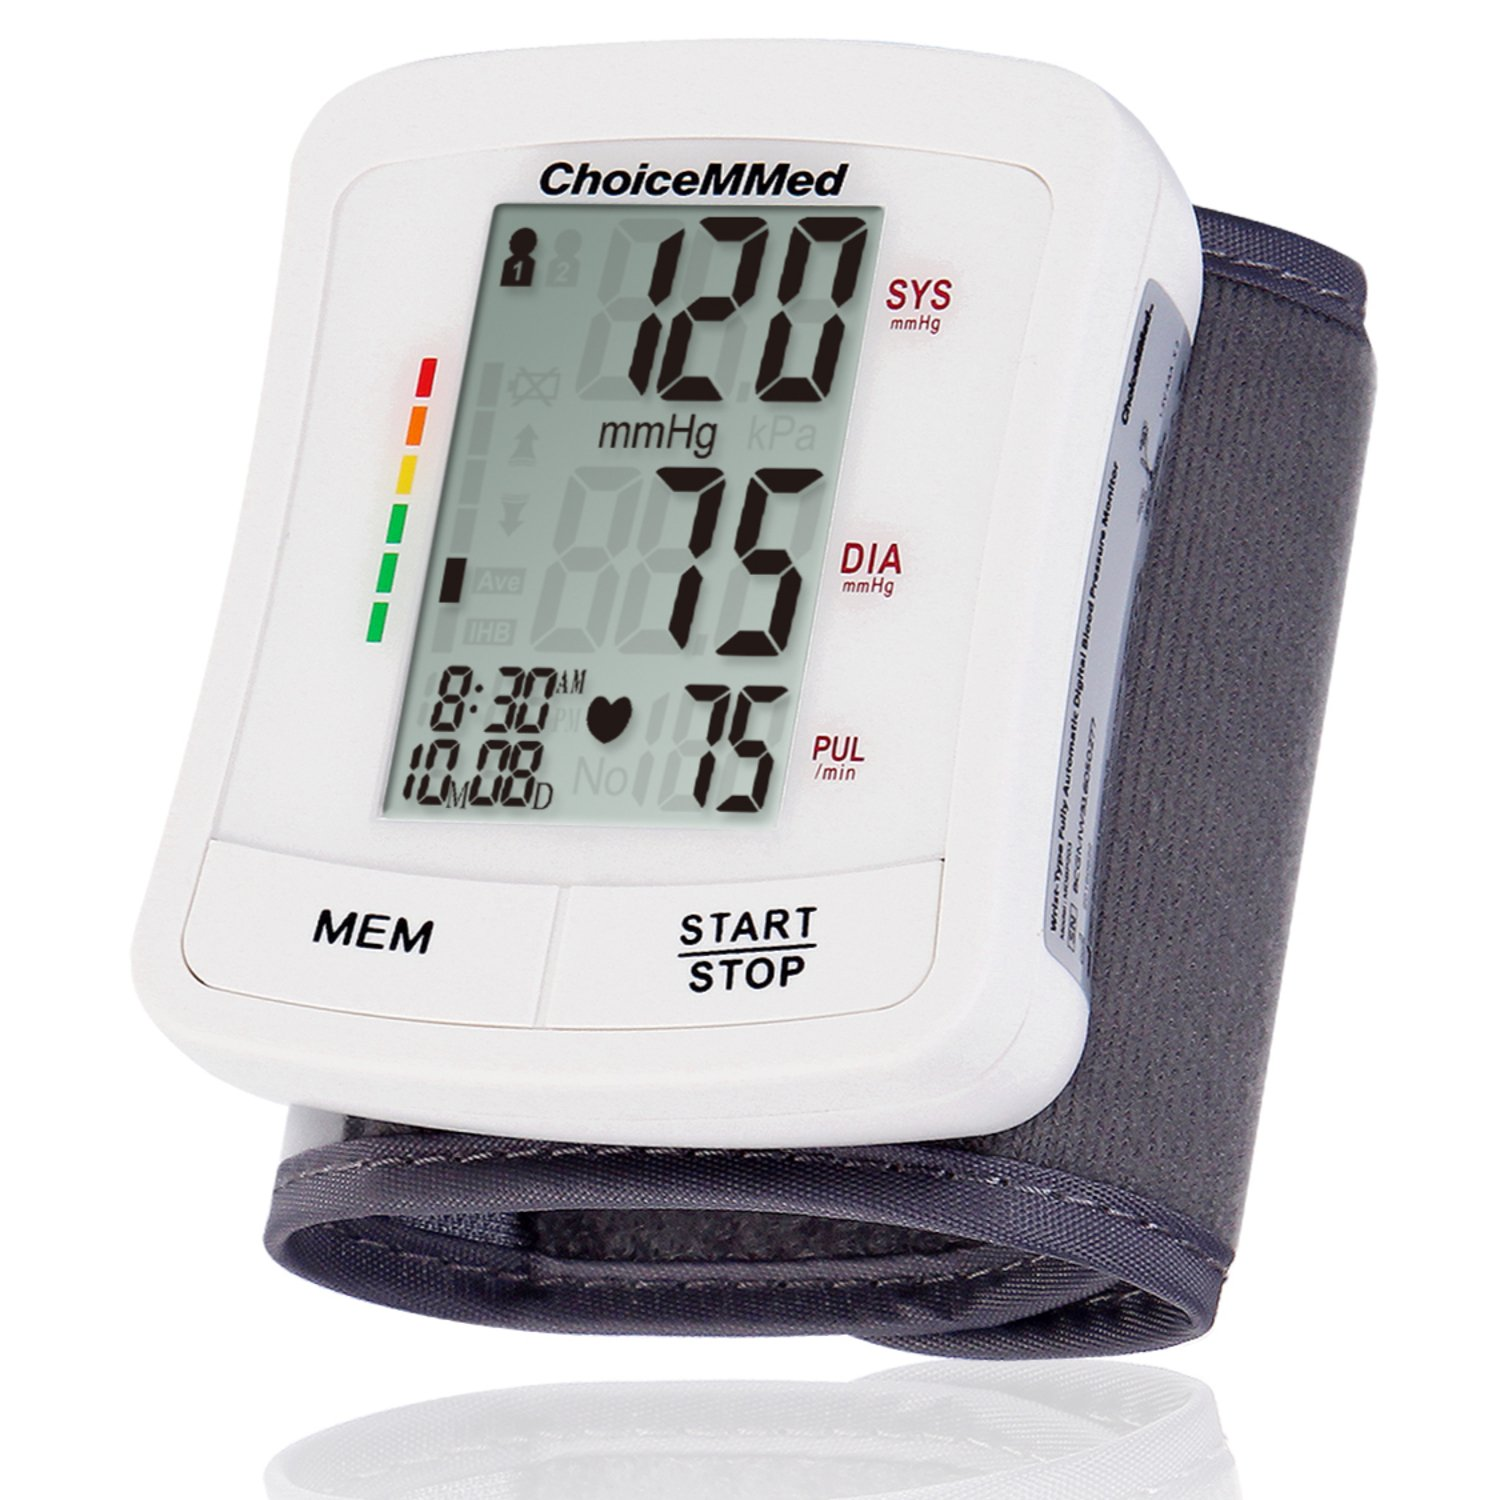 "CHOICEMMED Wrist Blood Pressure Monitor - BP Cuff Meter with Display - Blood Pressure Machine up 5.3""-8.5"" Wrists - Blood Pressure Tester Kit with Case - Blood Pressure Gauge with Memory"